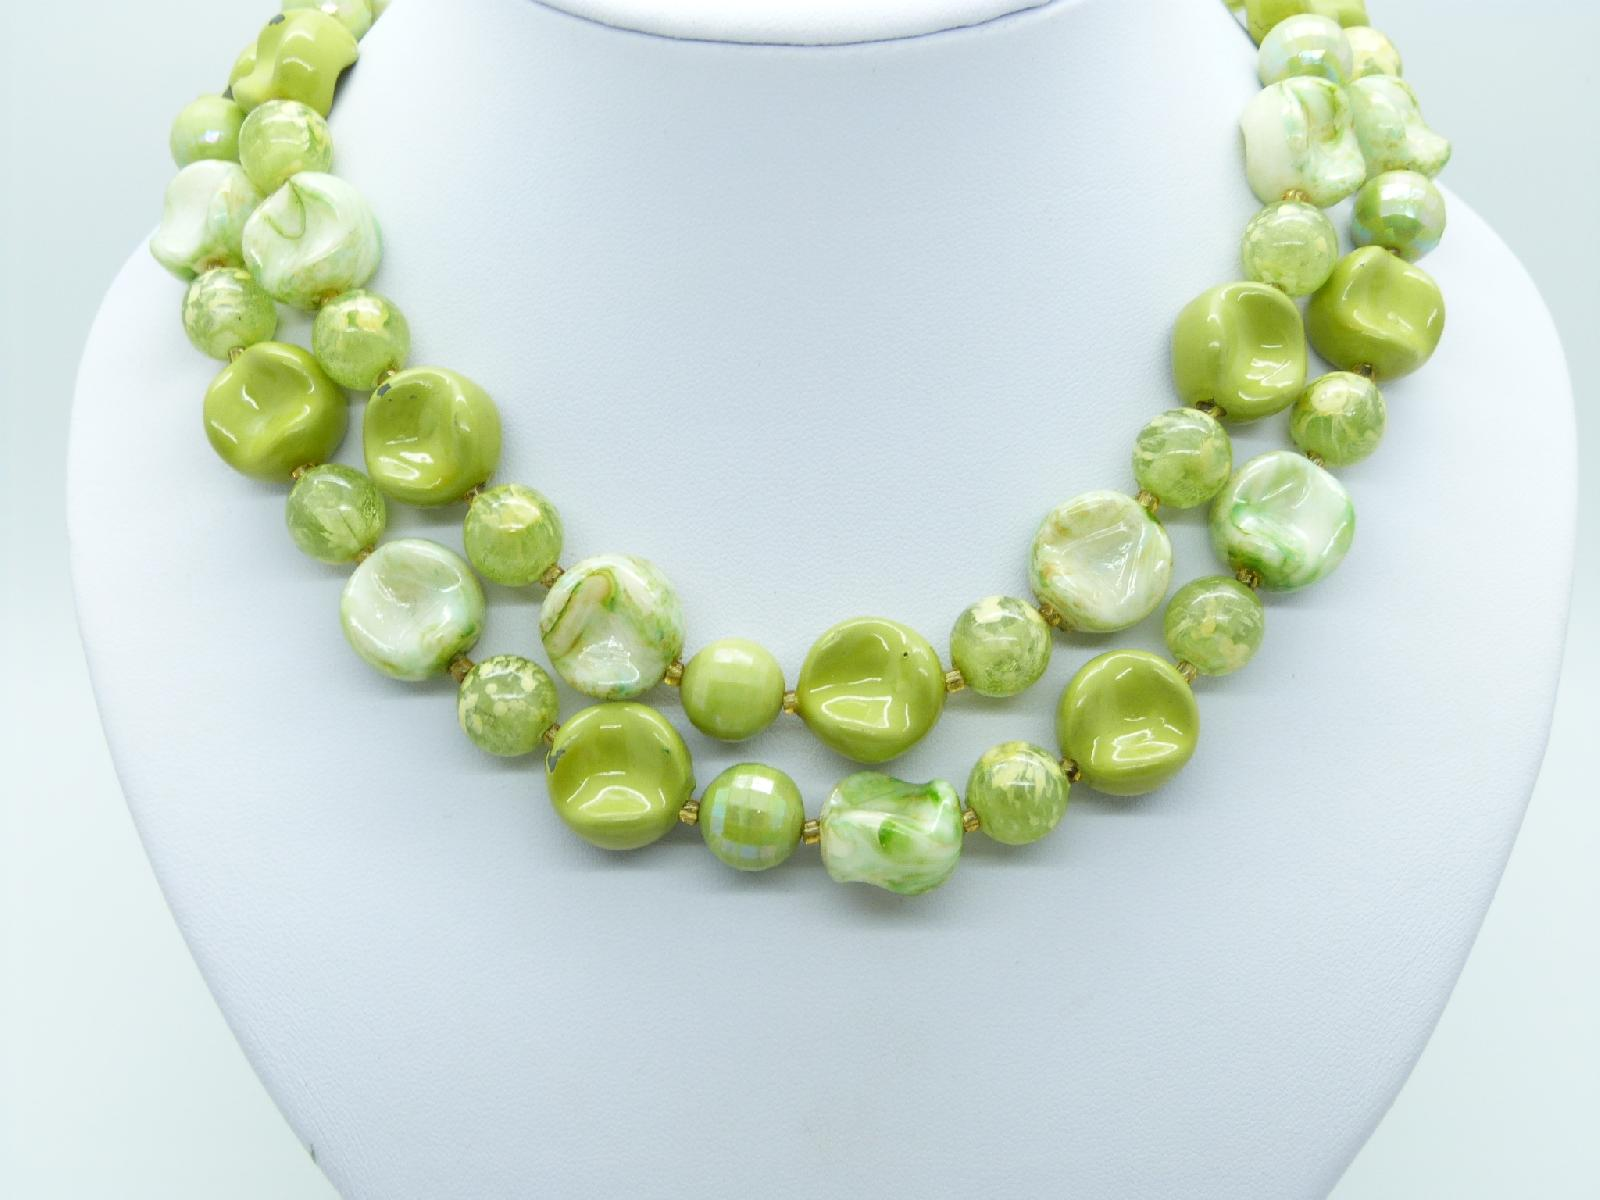 Vintage 50s Unusual Two Row Green Lustre Lucite Bead Necklace 53cms